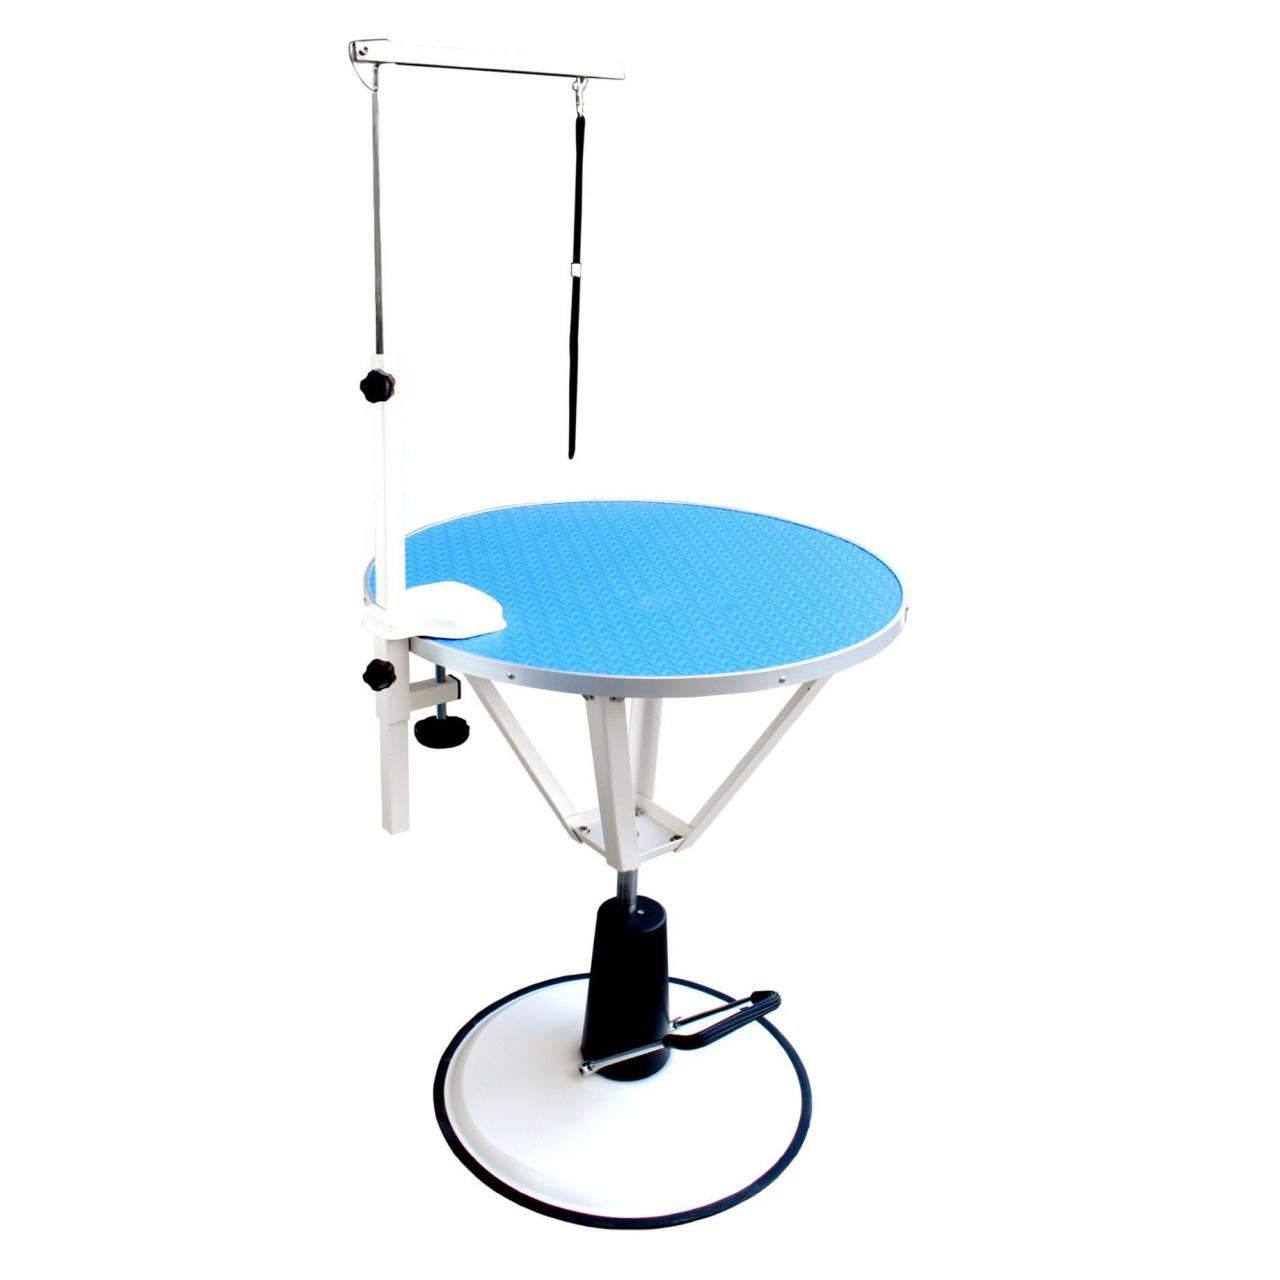 Hydraulic Table HT-4 Hydraulic Lifting Grooming Table Manufactures